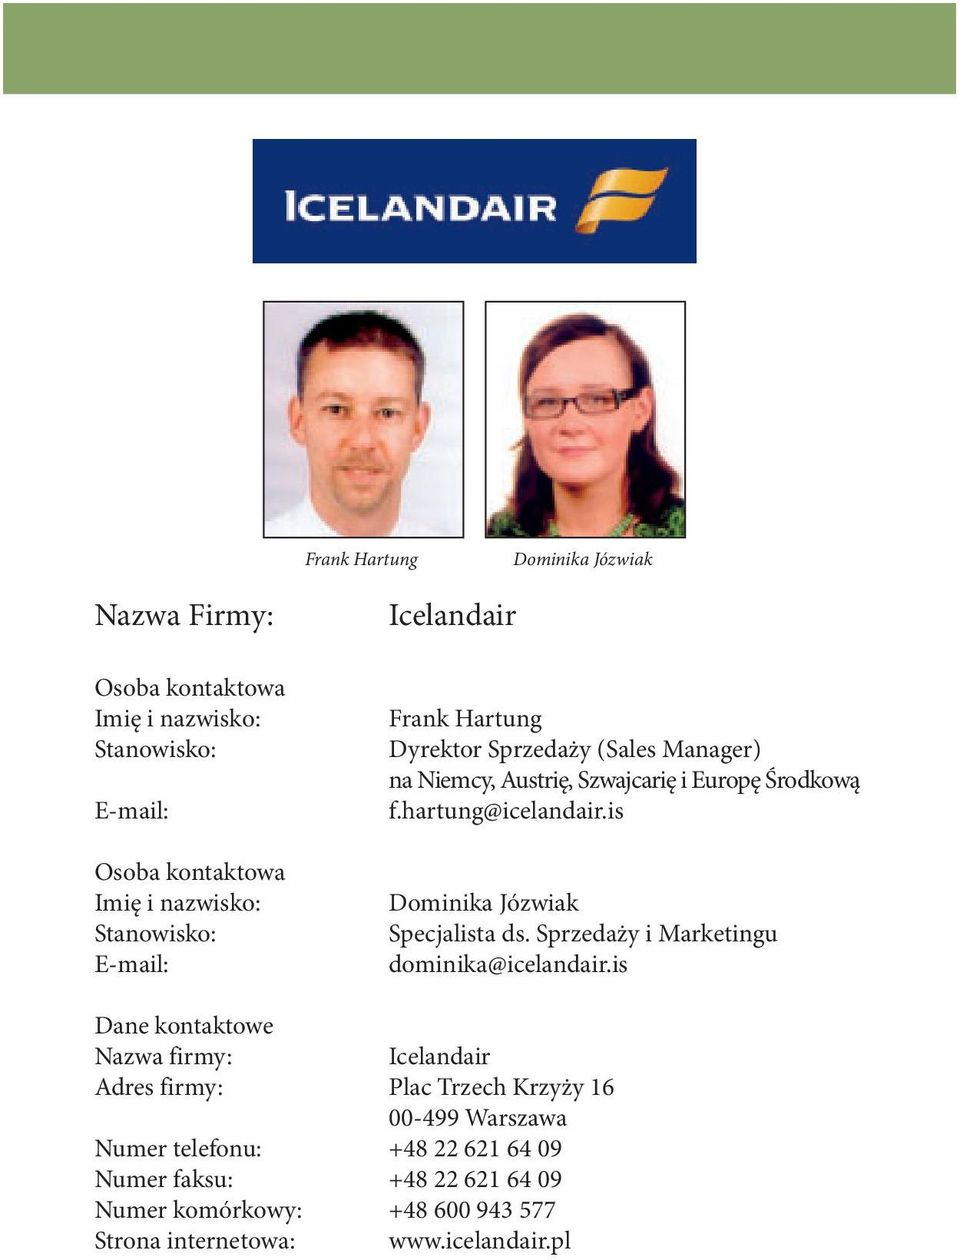 Sprzedaży i Marketingu dominika@icelandair.